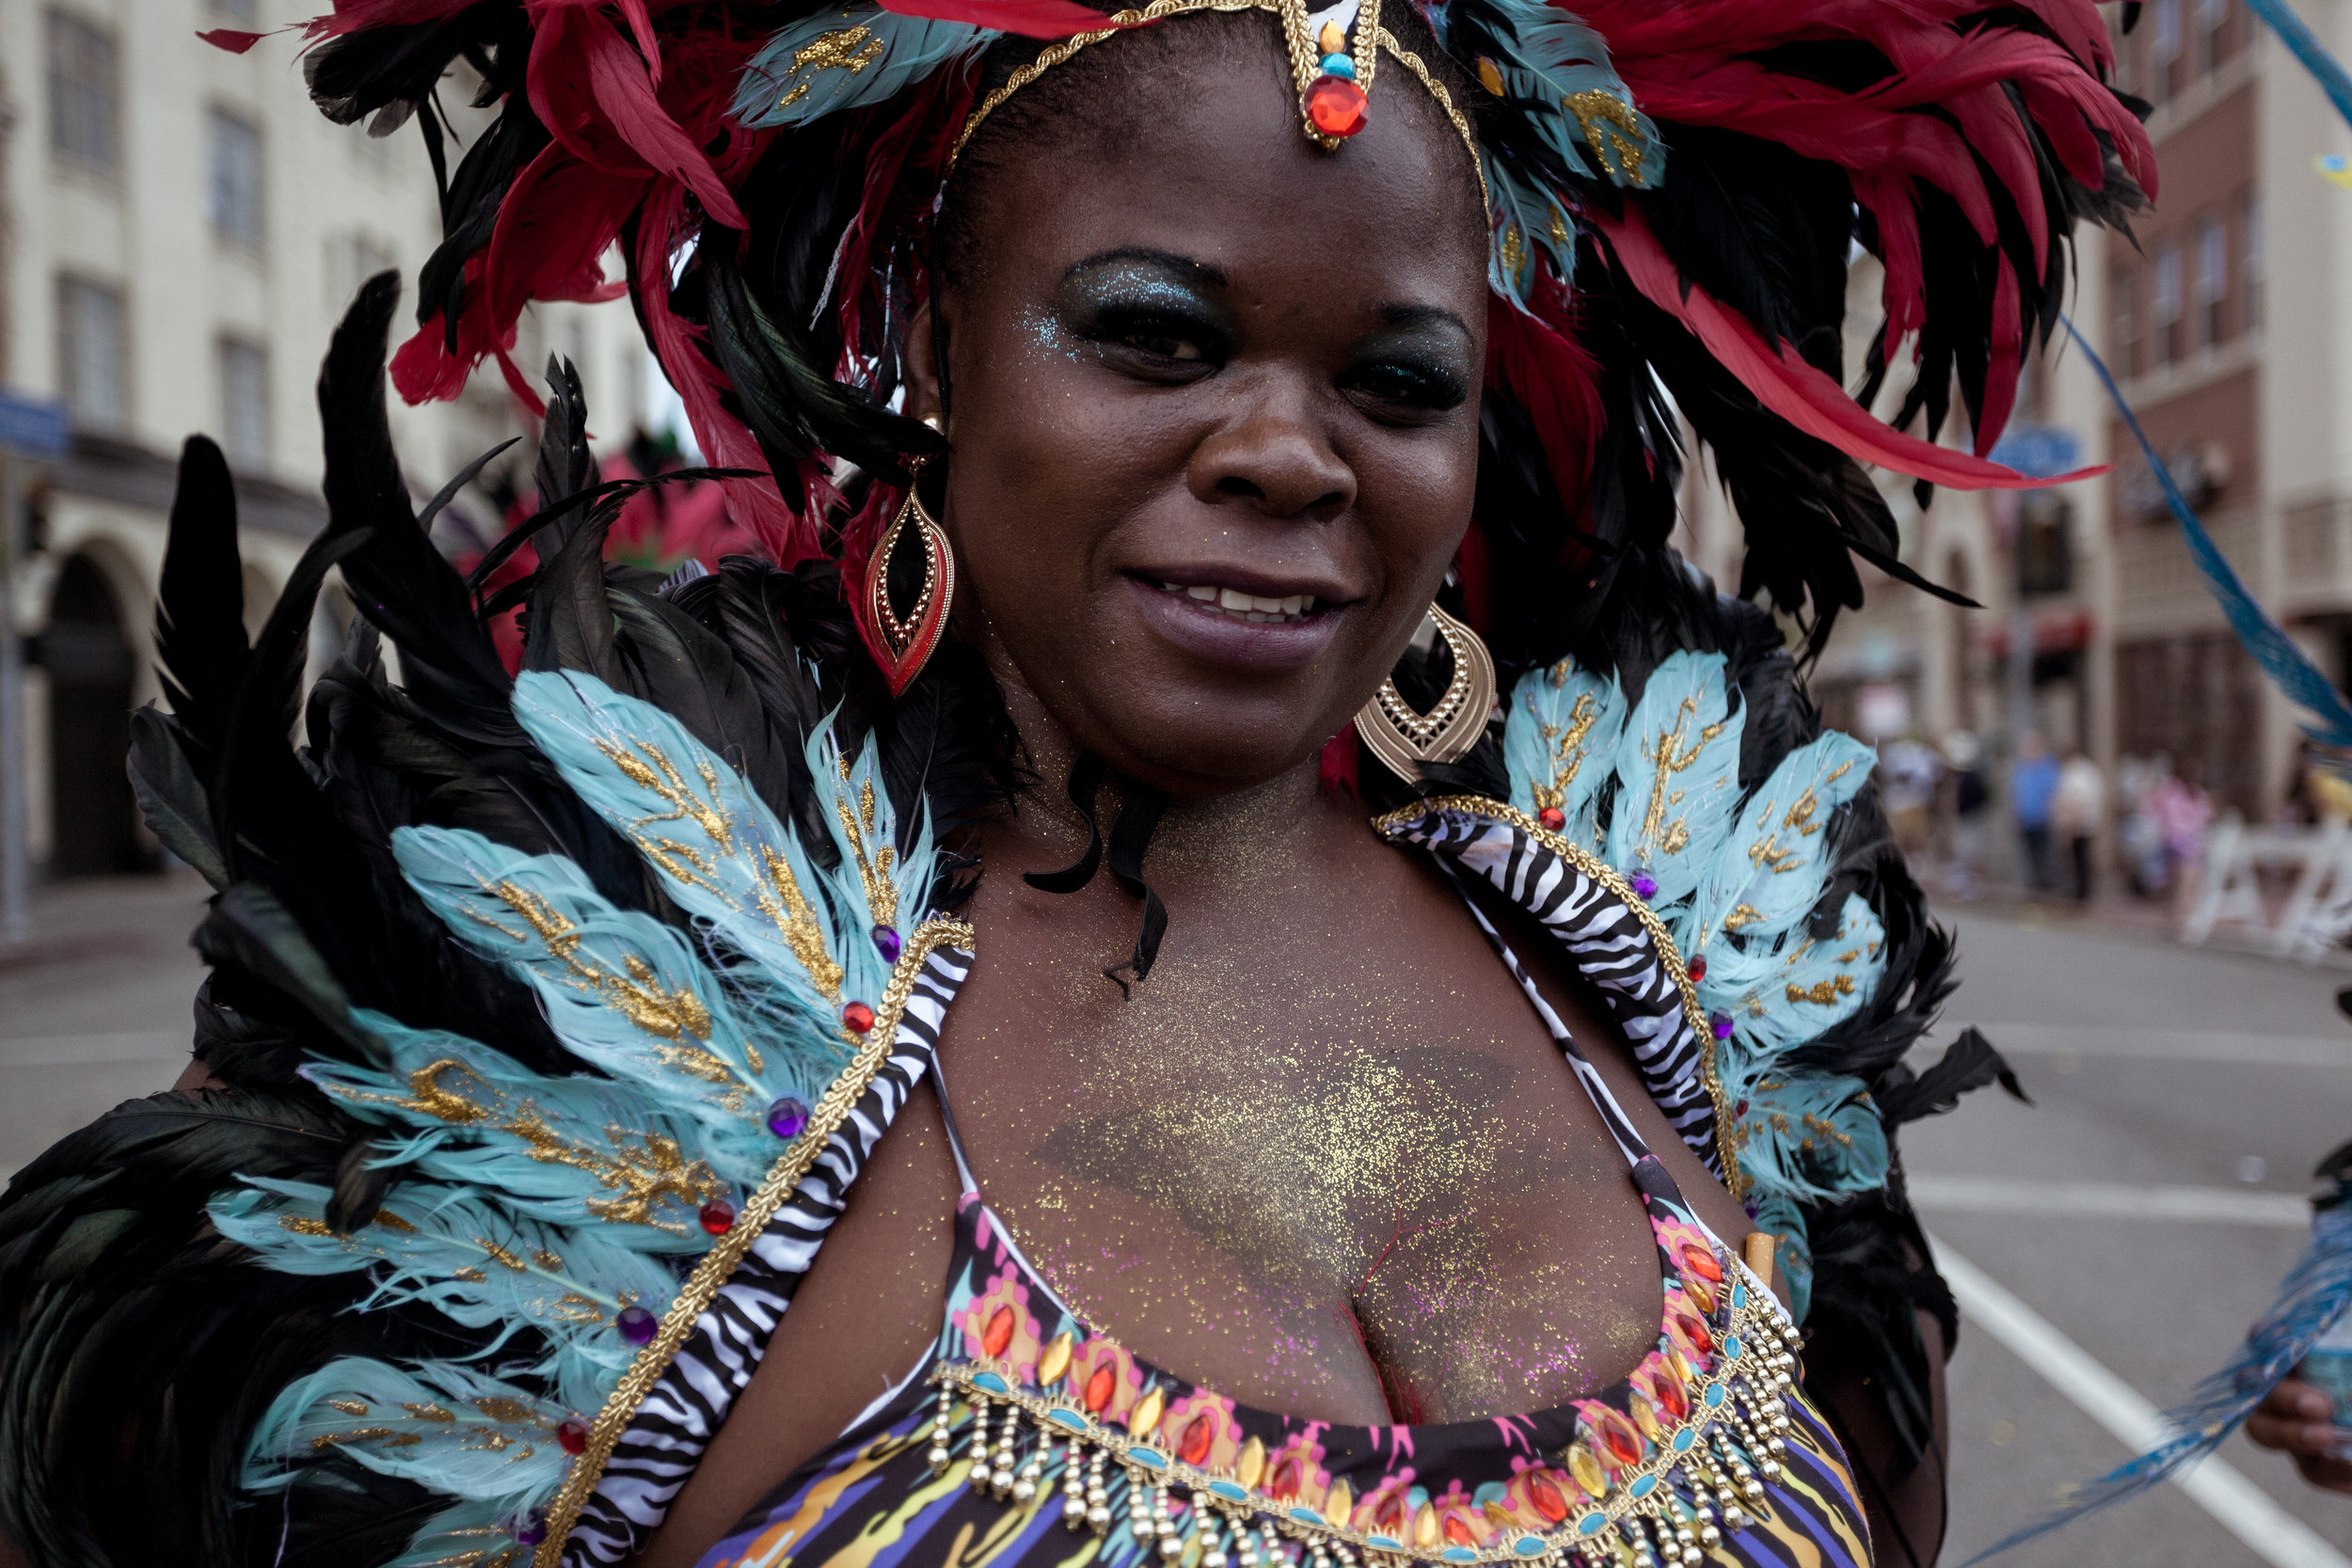 Chacon Images_Carnaval_Print-5761.jpg